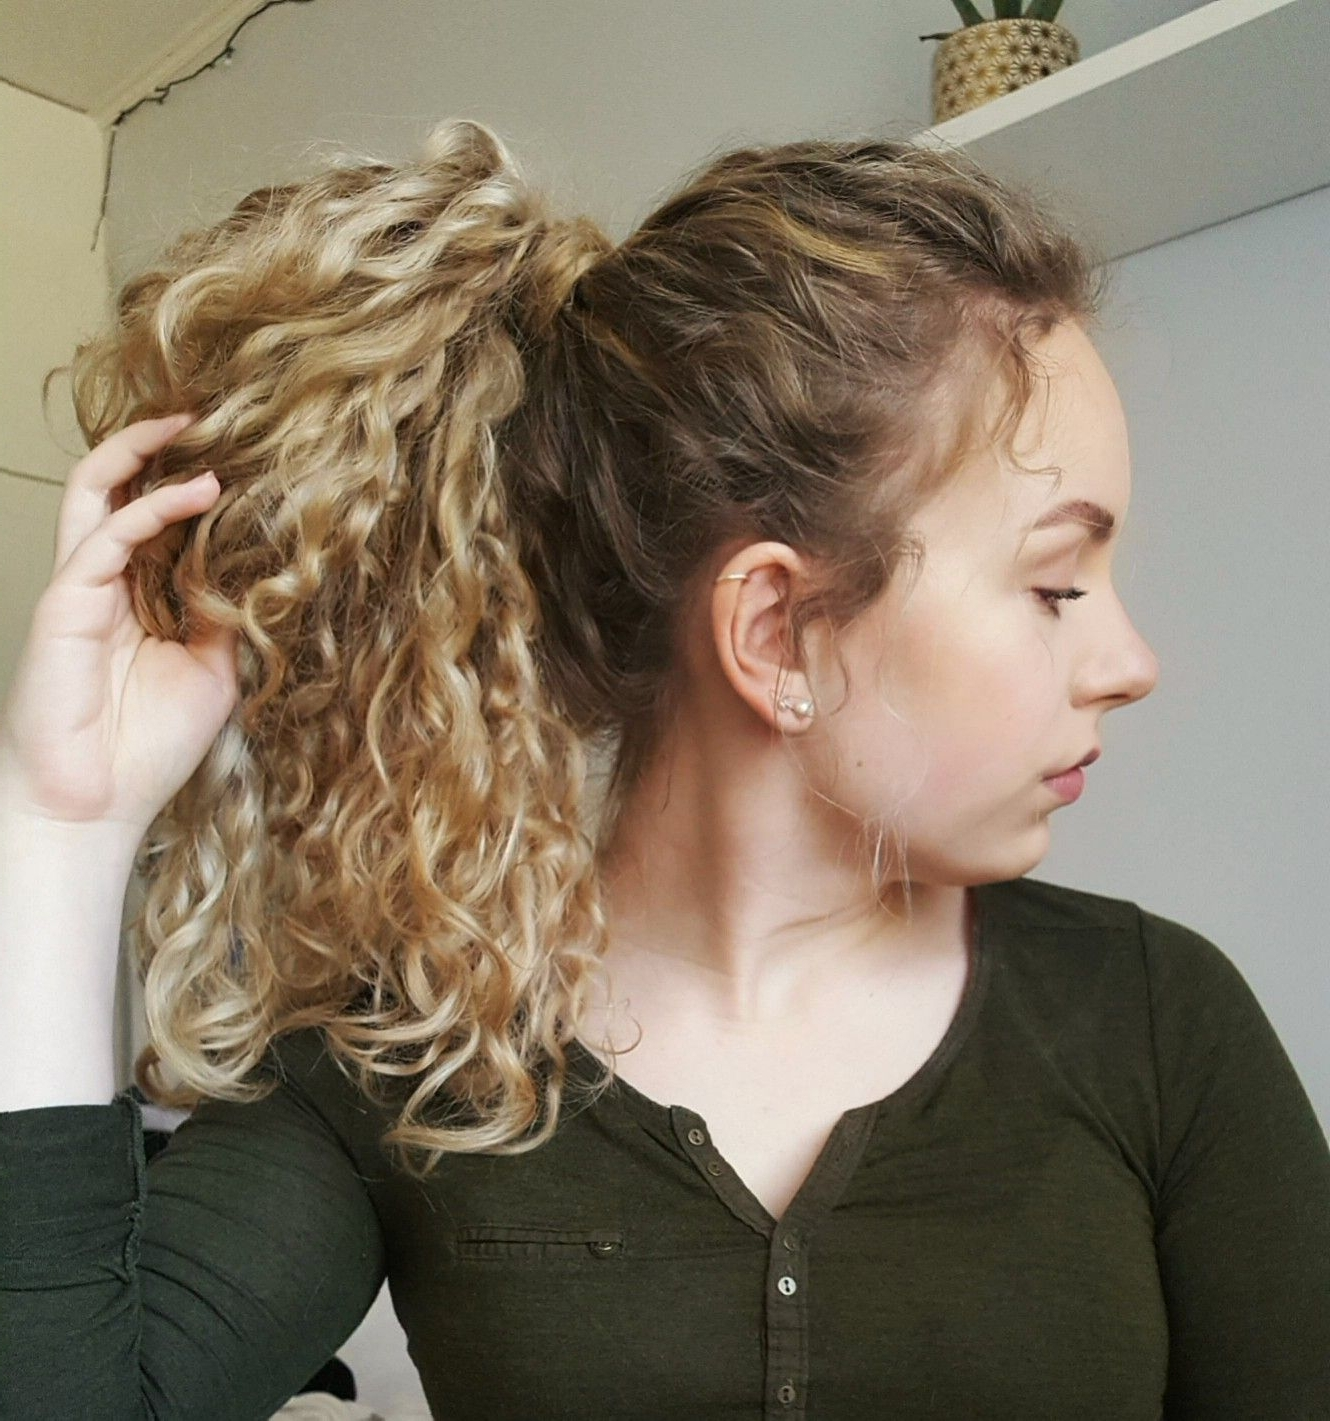 Well Known Curly Blonde Ponytail Hairstyles With Weave Within Image Result For Long Natural Curly Blonde Hair Ponytail (View 19 of 20)